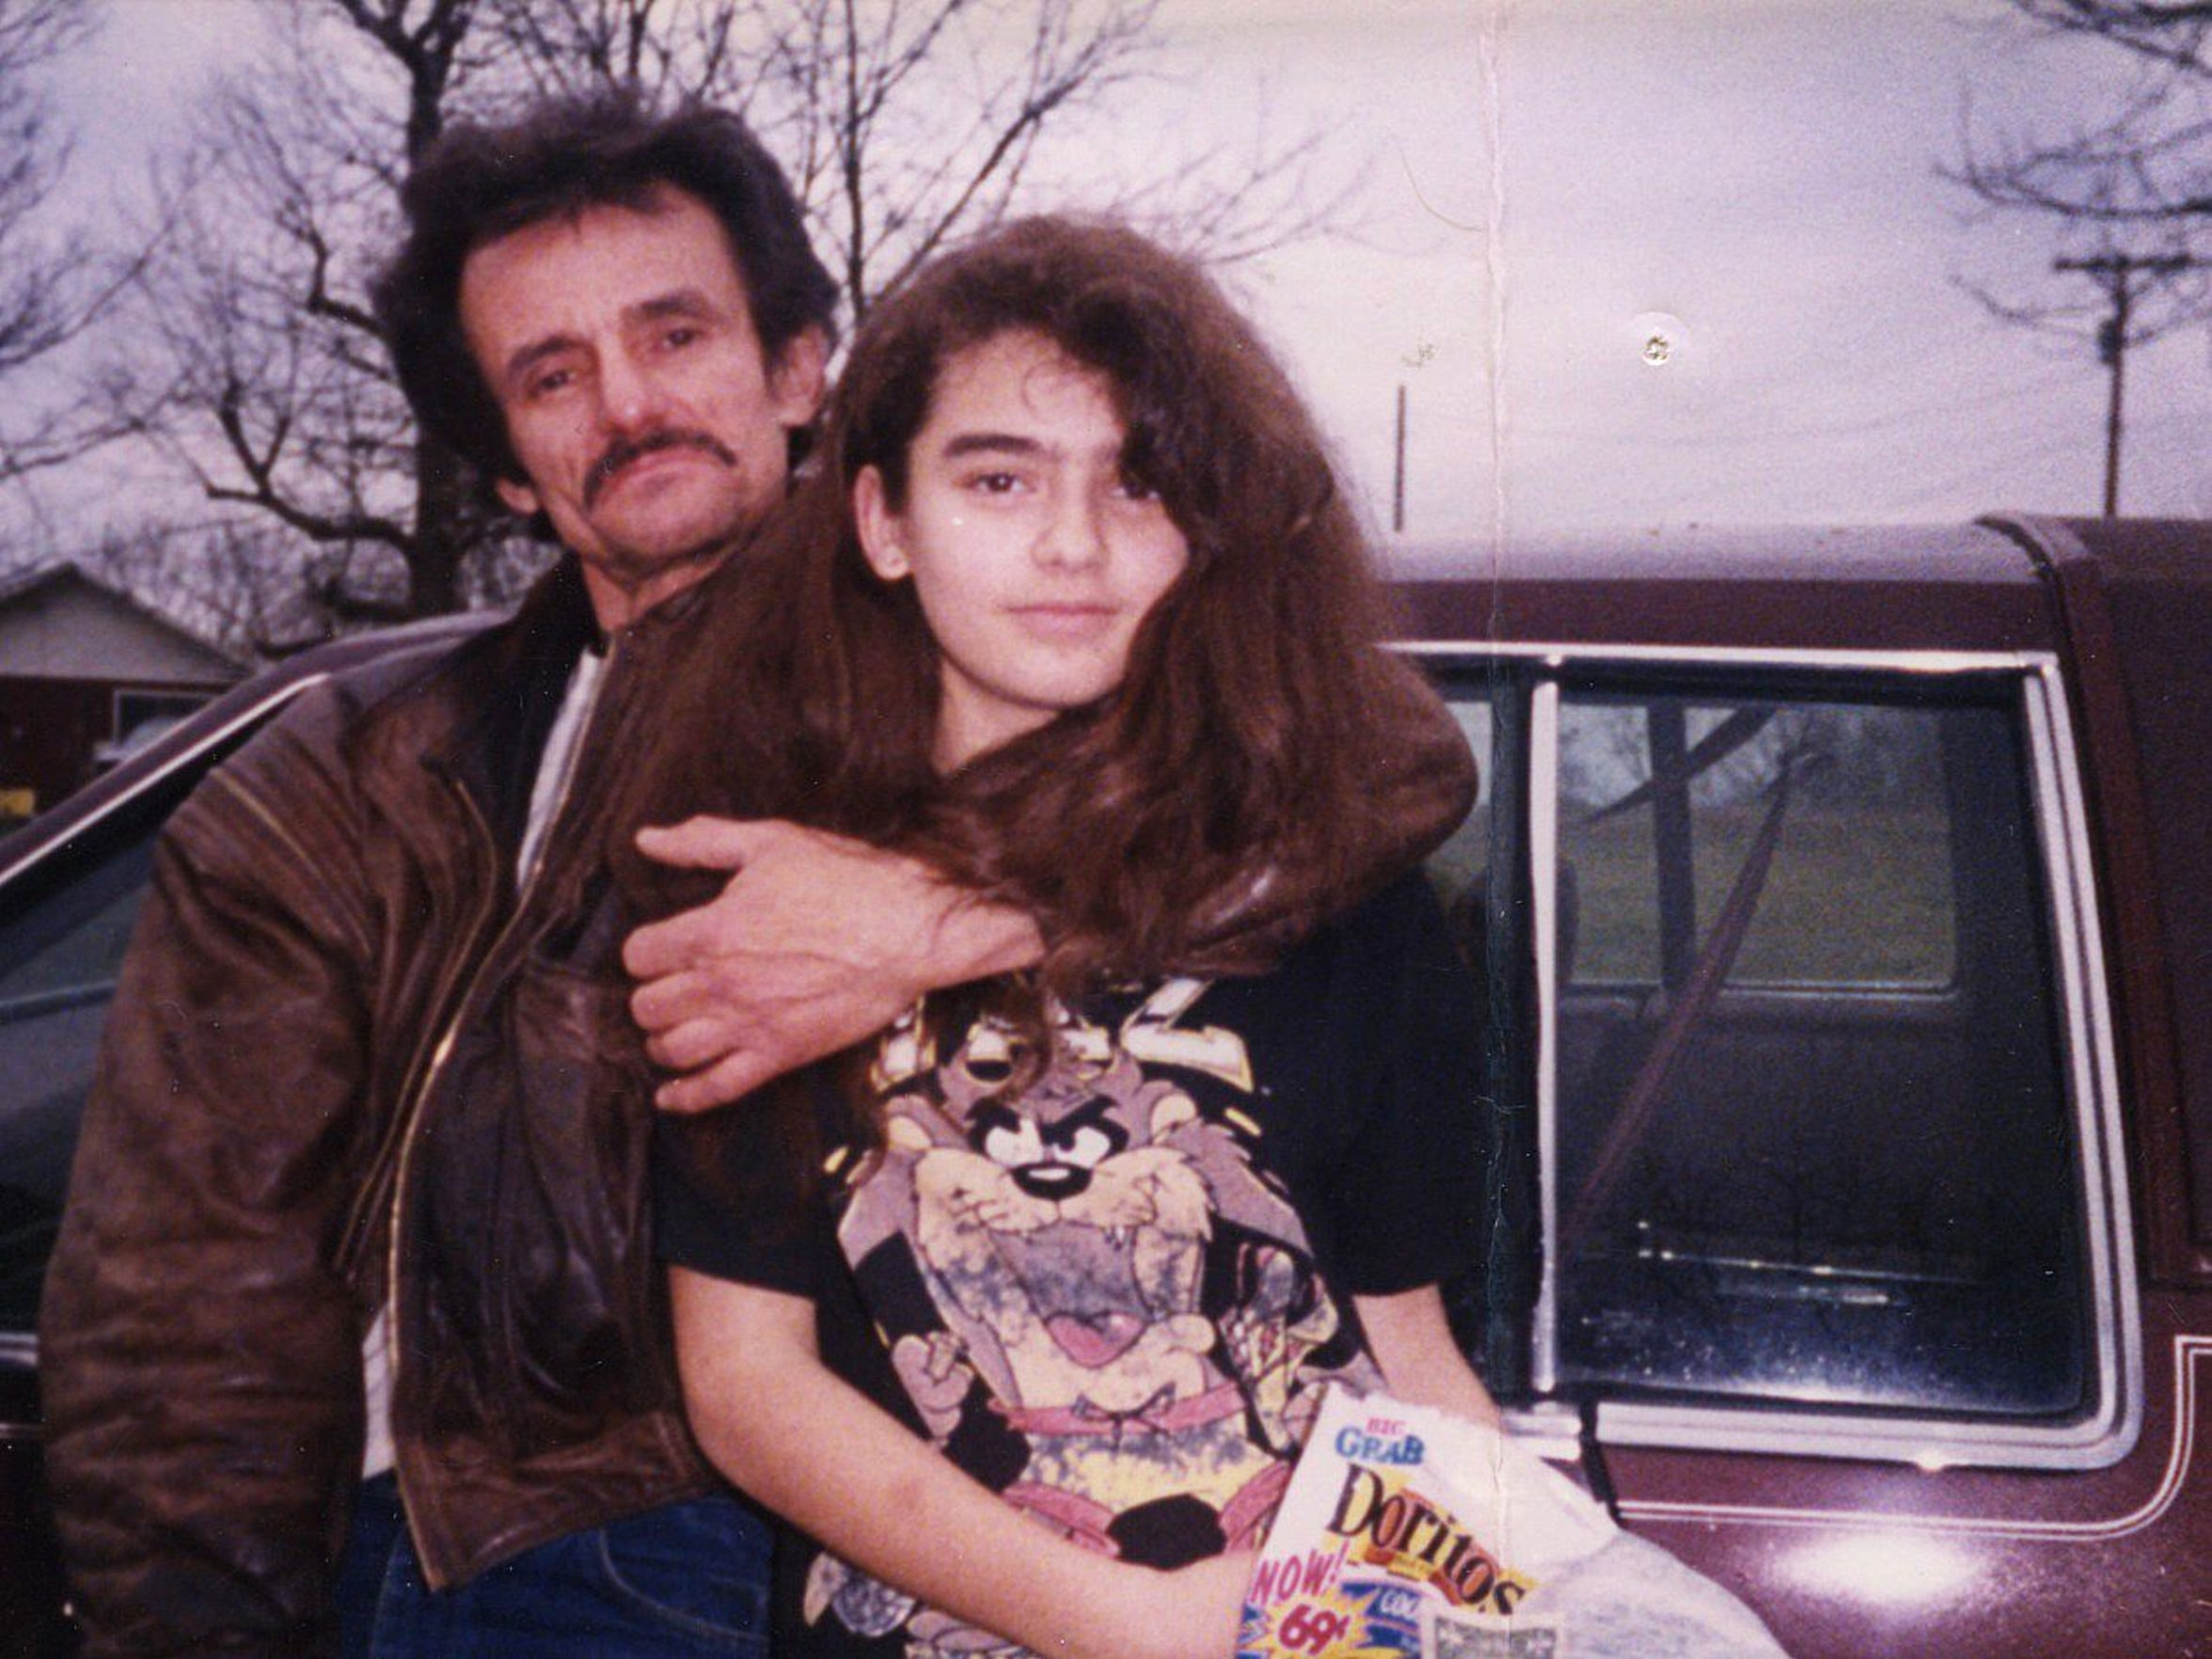 Bob Paillet, left, hugs his daughter Gena in this photo from the late 1980s or early 1990s.